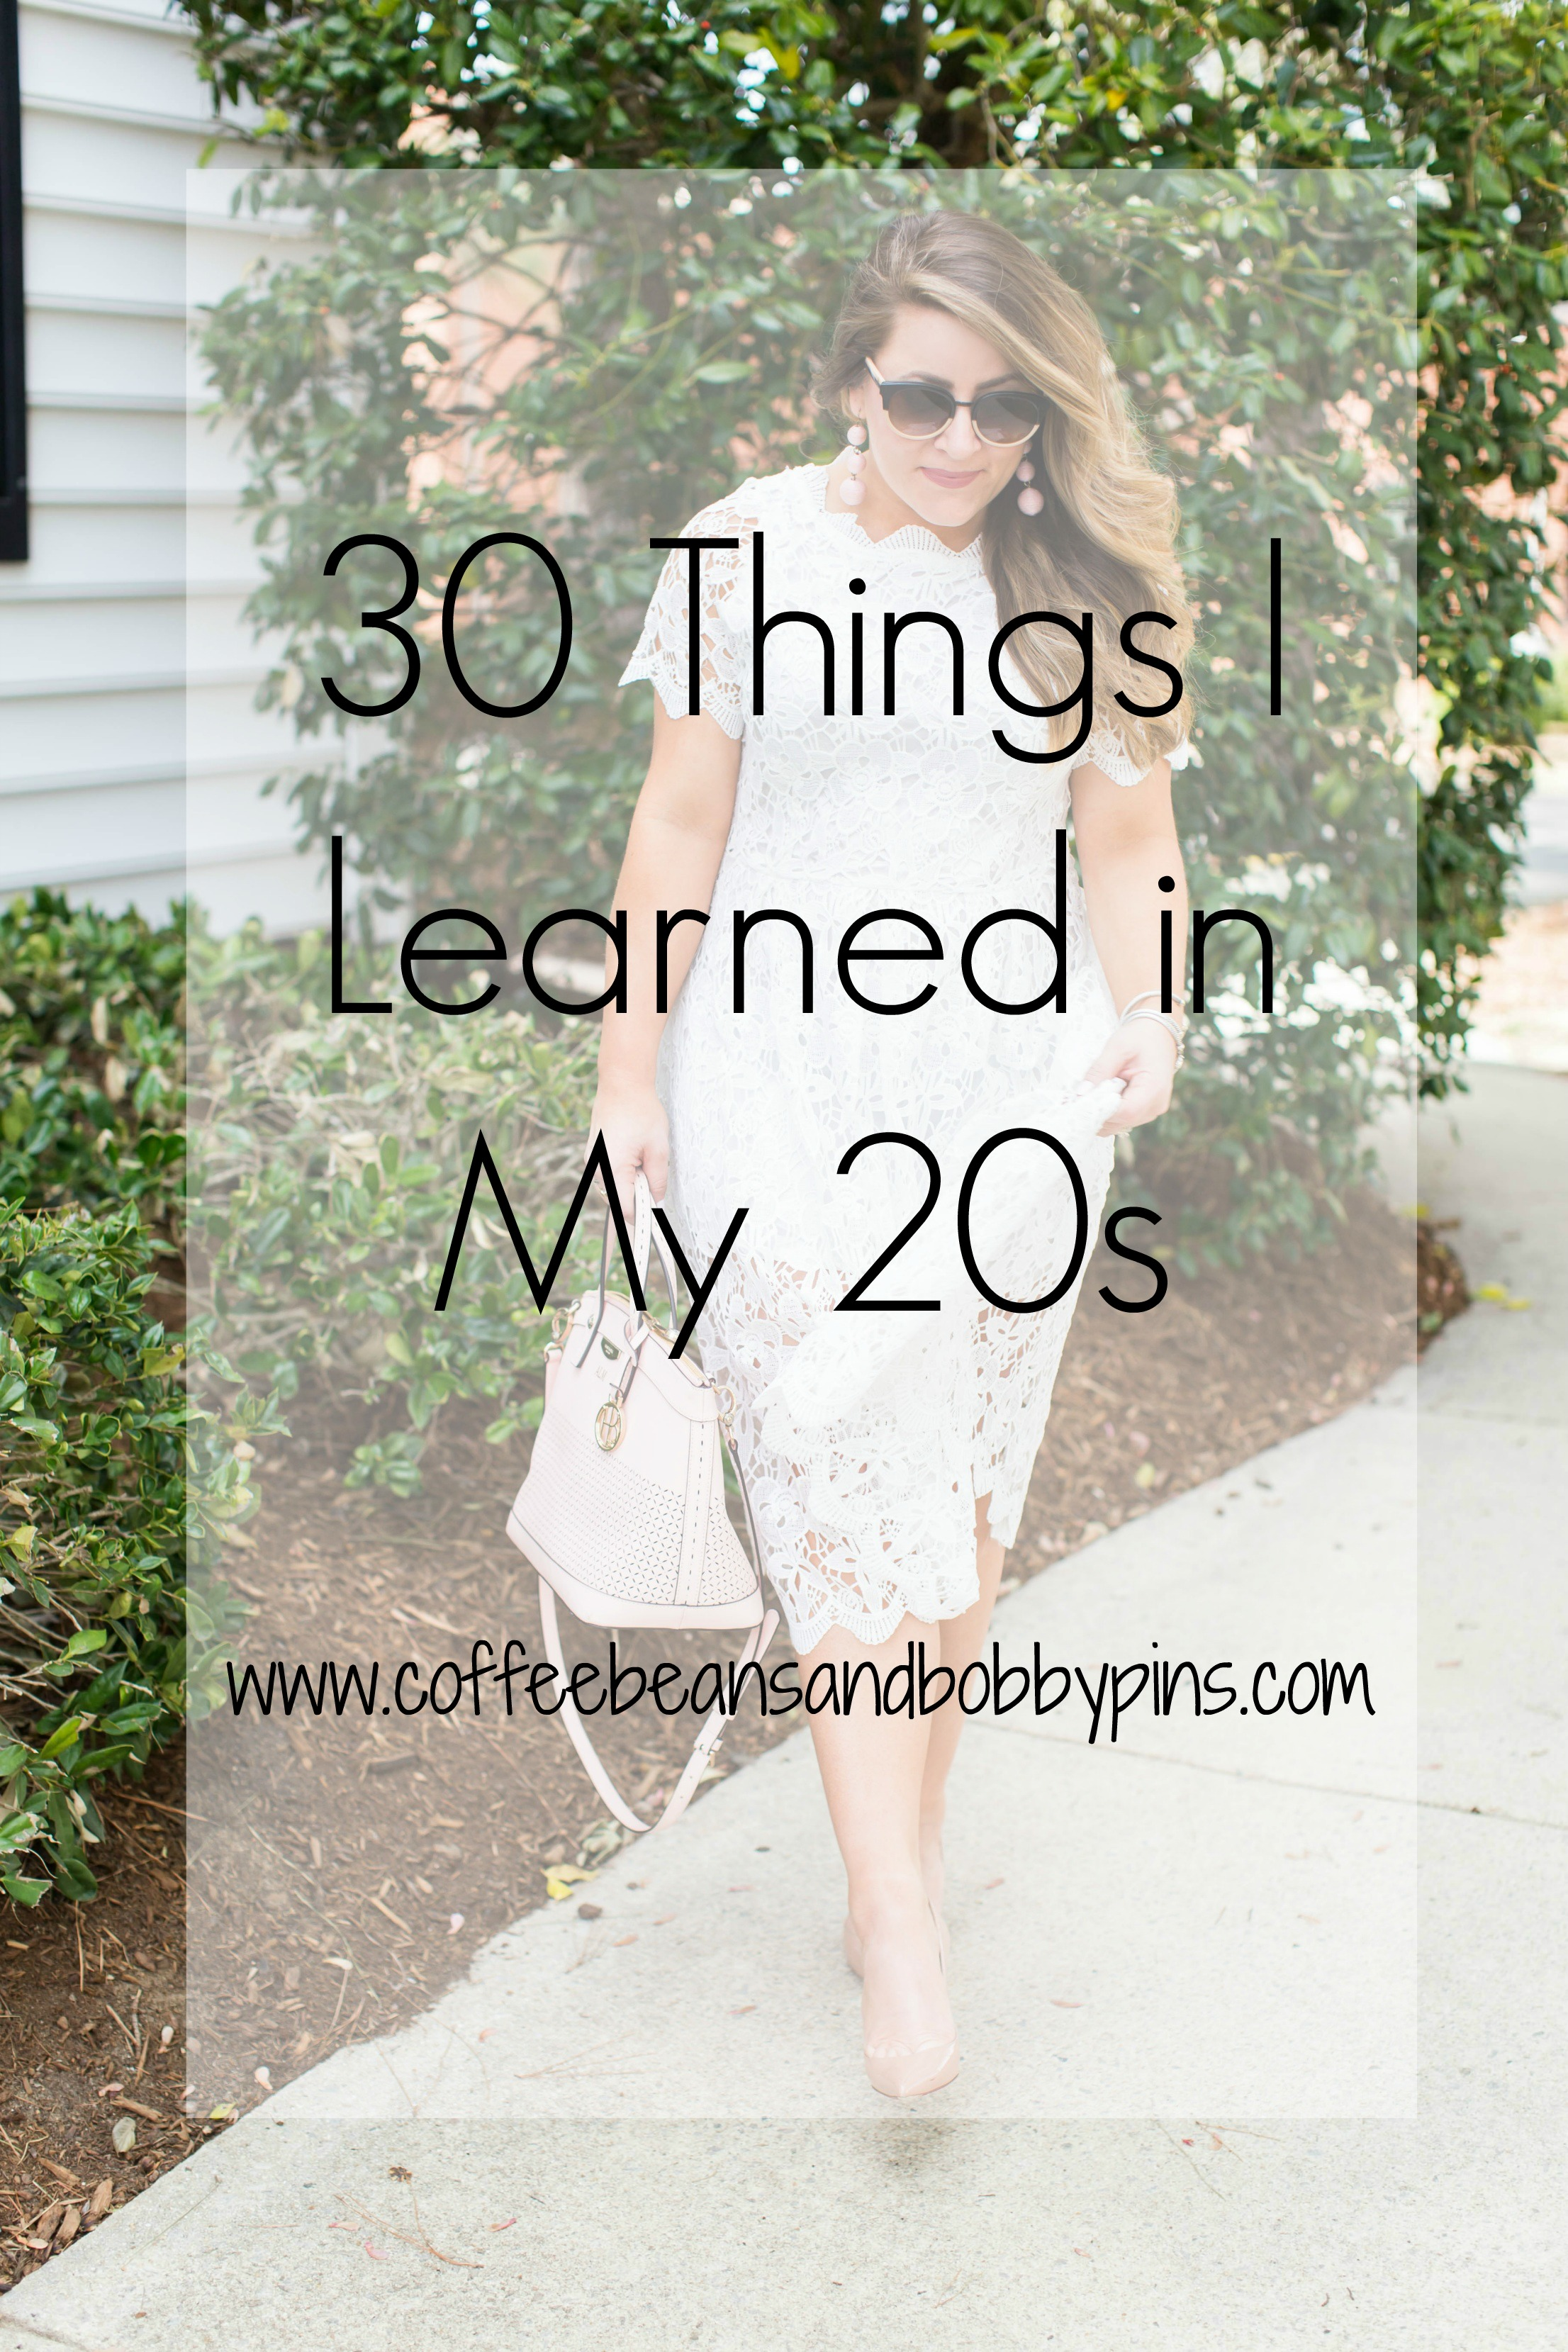 30 Things To Learn in Your 20s by lifestyle blogger Amy of Coffee Beans and Bobby Pins